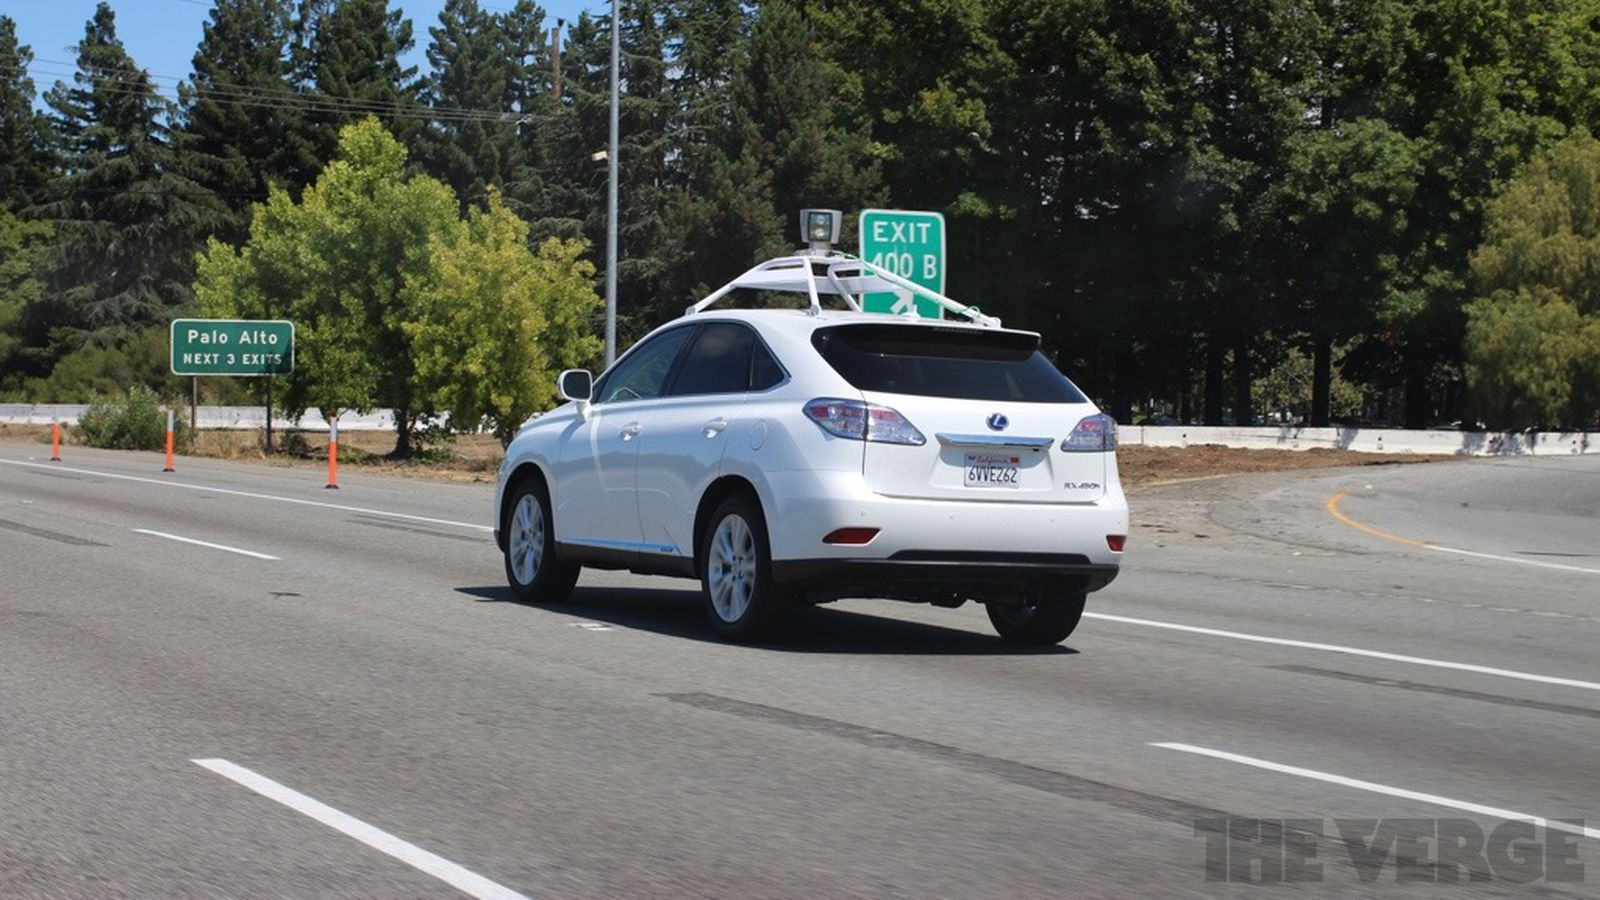 Drive Google Maps Car Google's Self-driving Cars